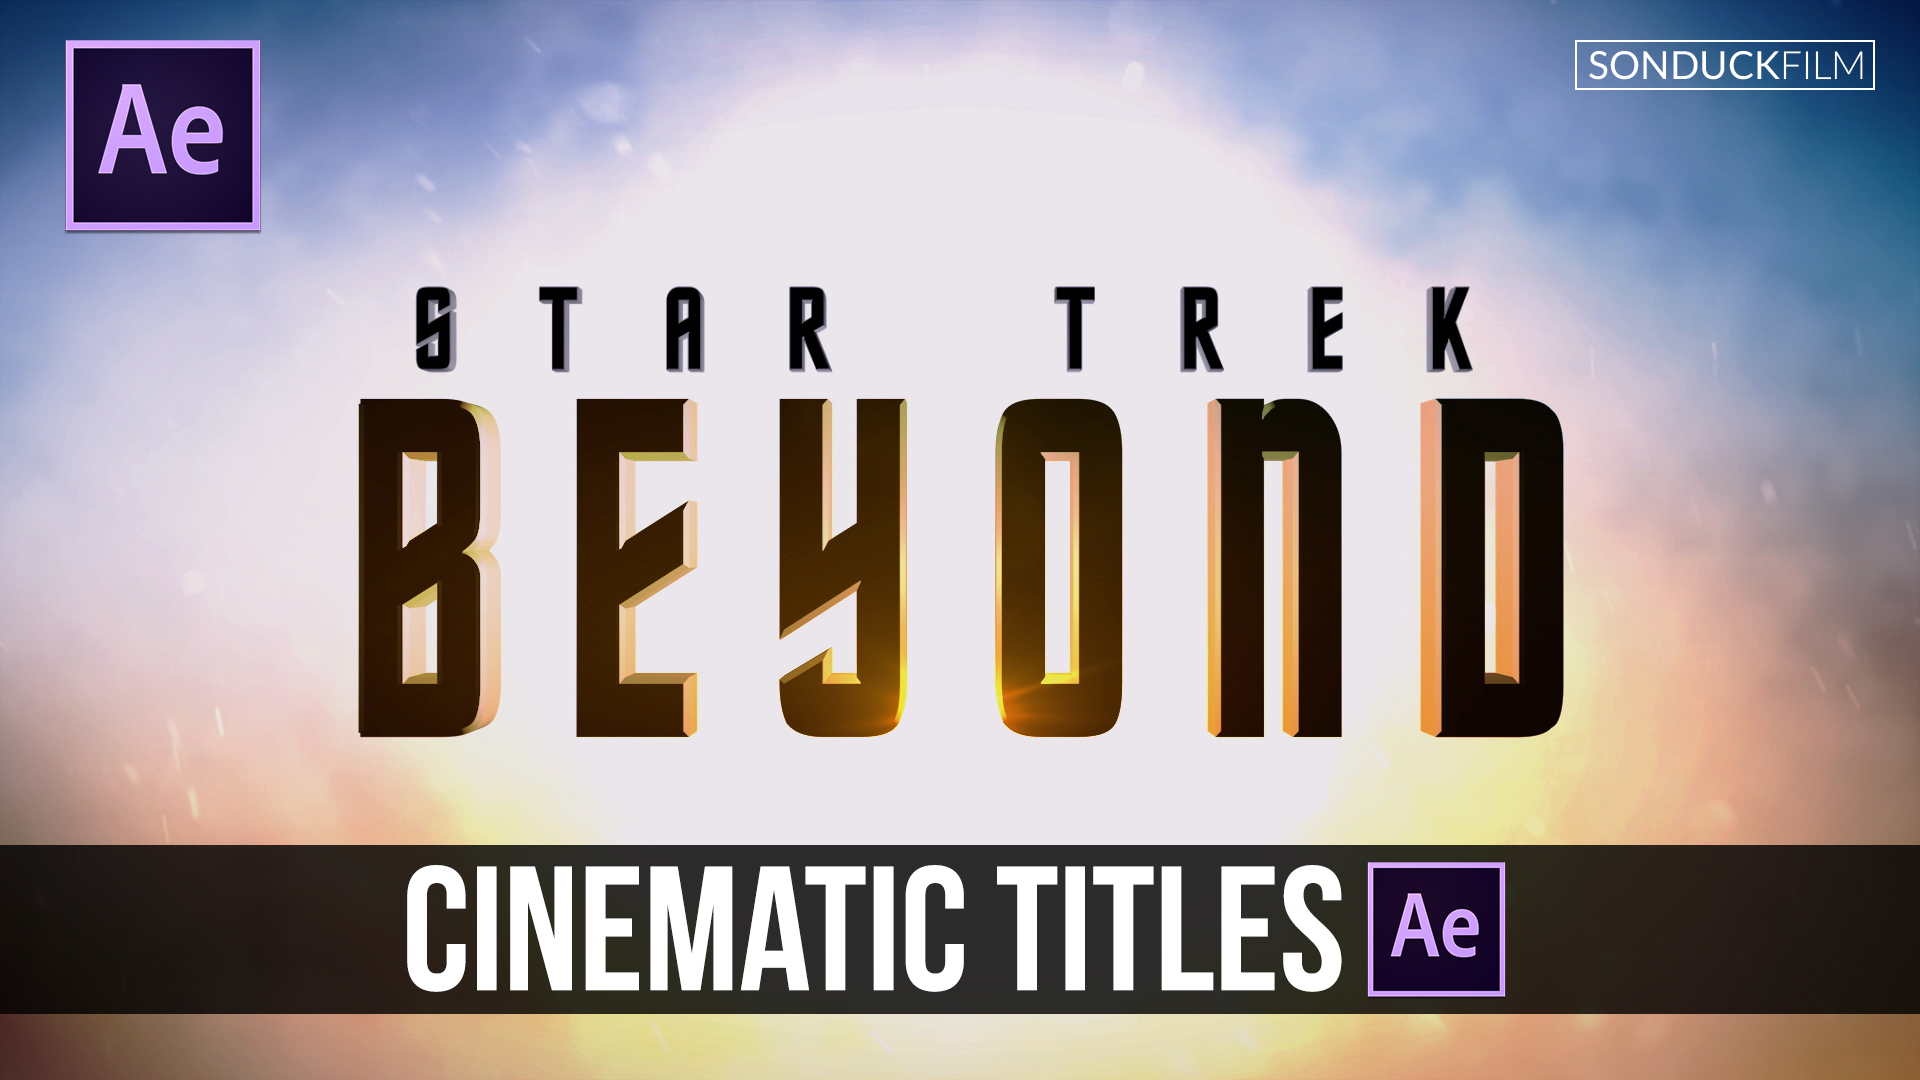 After-Effects-Tutorial-Cinematic-titles-Star-Trek-Beyond